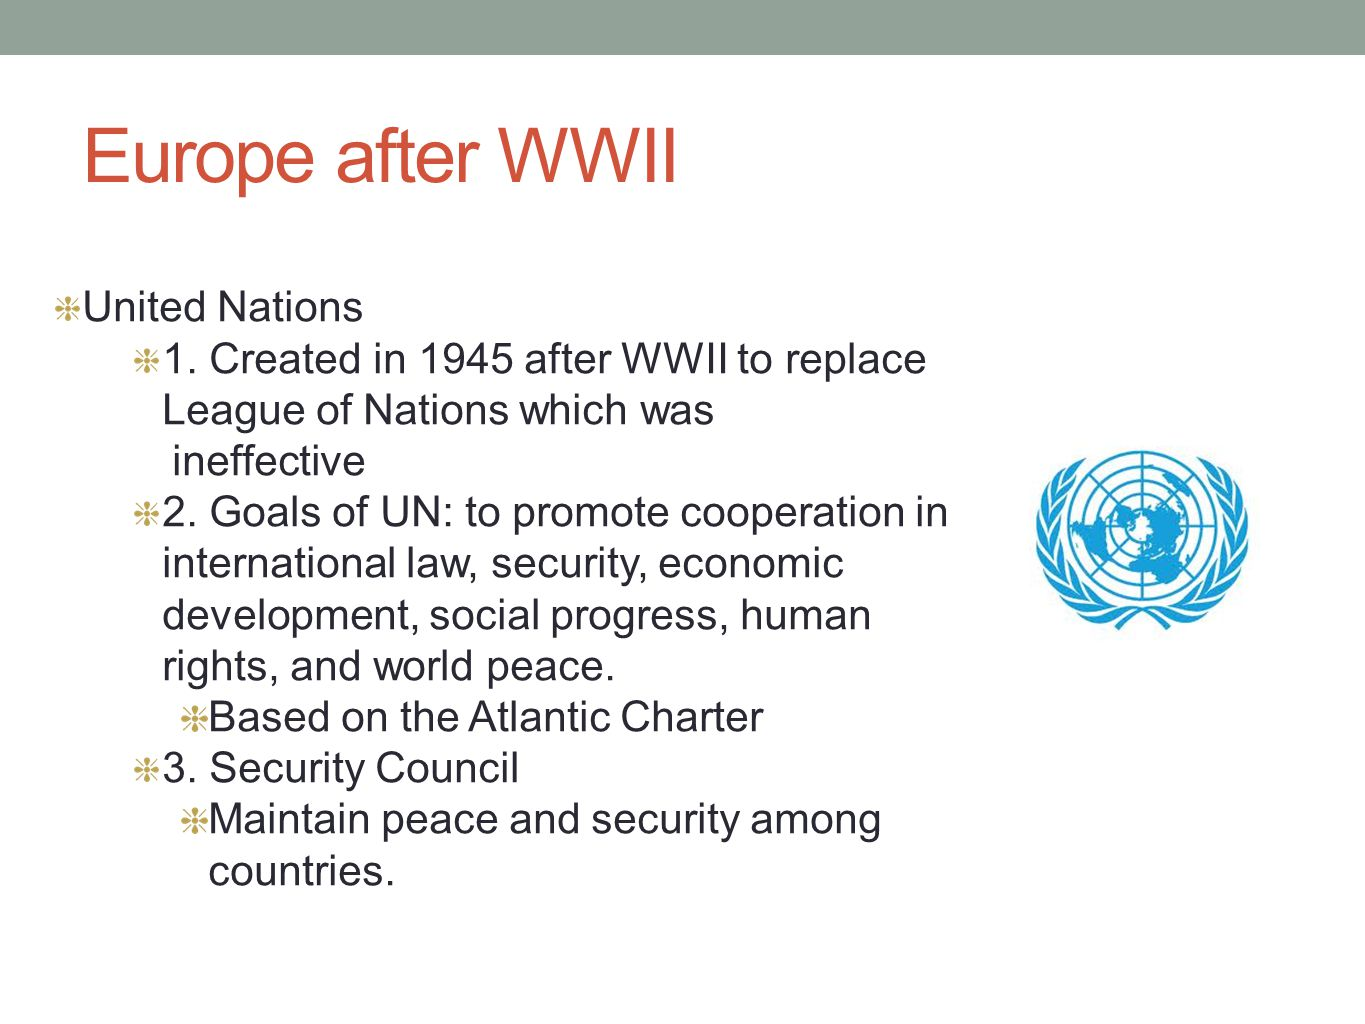 United Nations Security Council made up of 5 permanent member nations: US, GB, France, China, Soviet Union.